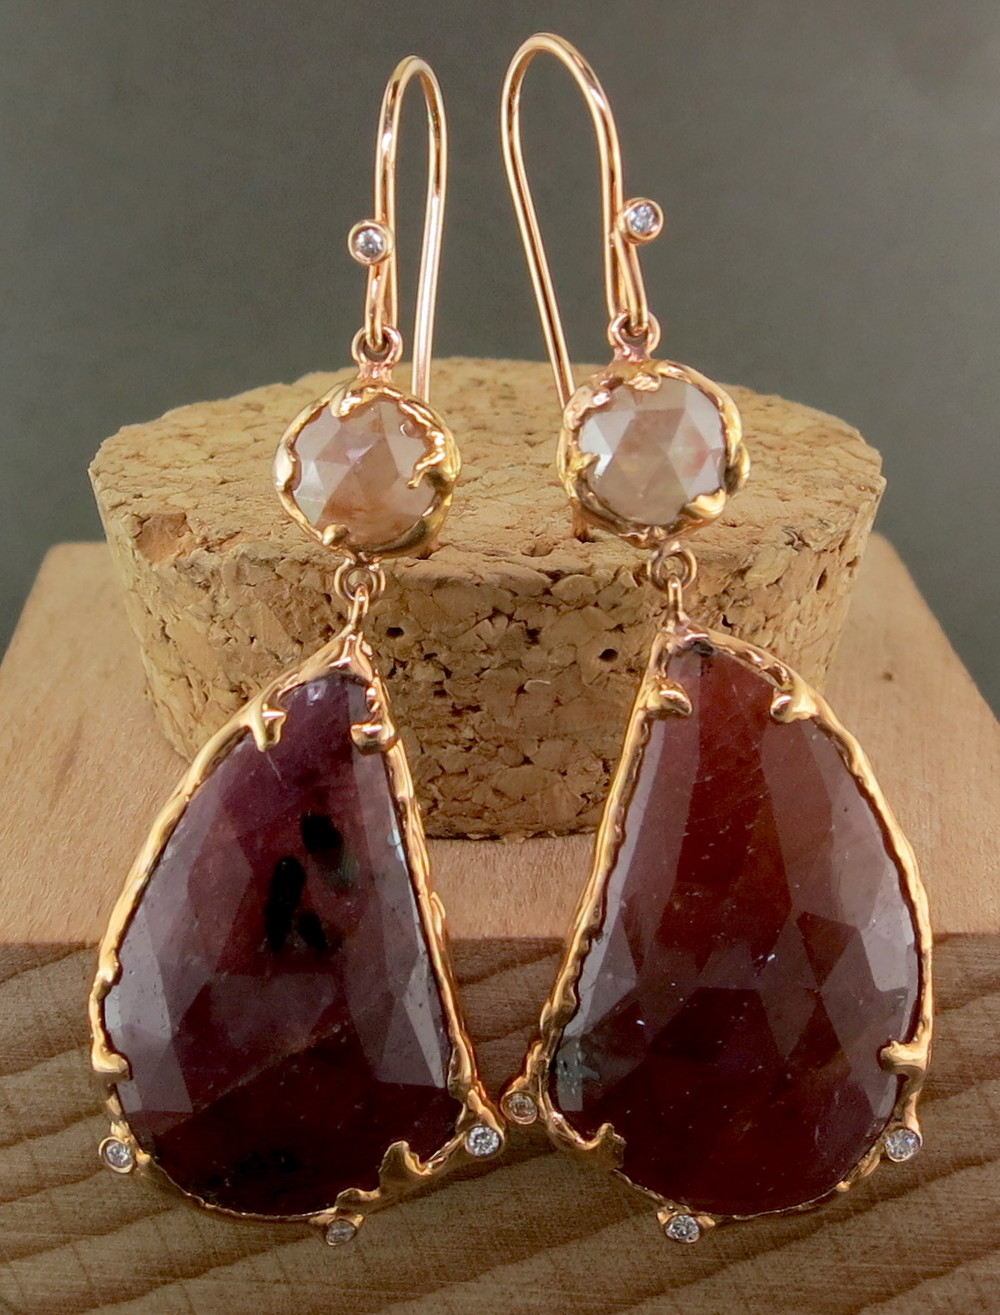 18 Karat Rose Gold, Sapphire, and Raw Diamond Dangle Earrings, accented with White Diamonds (MB32605)